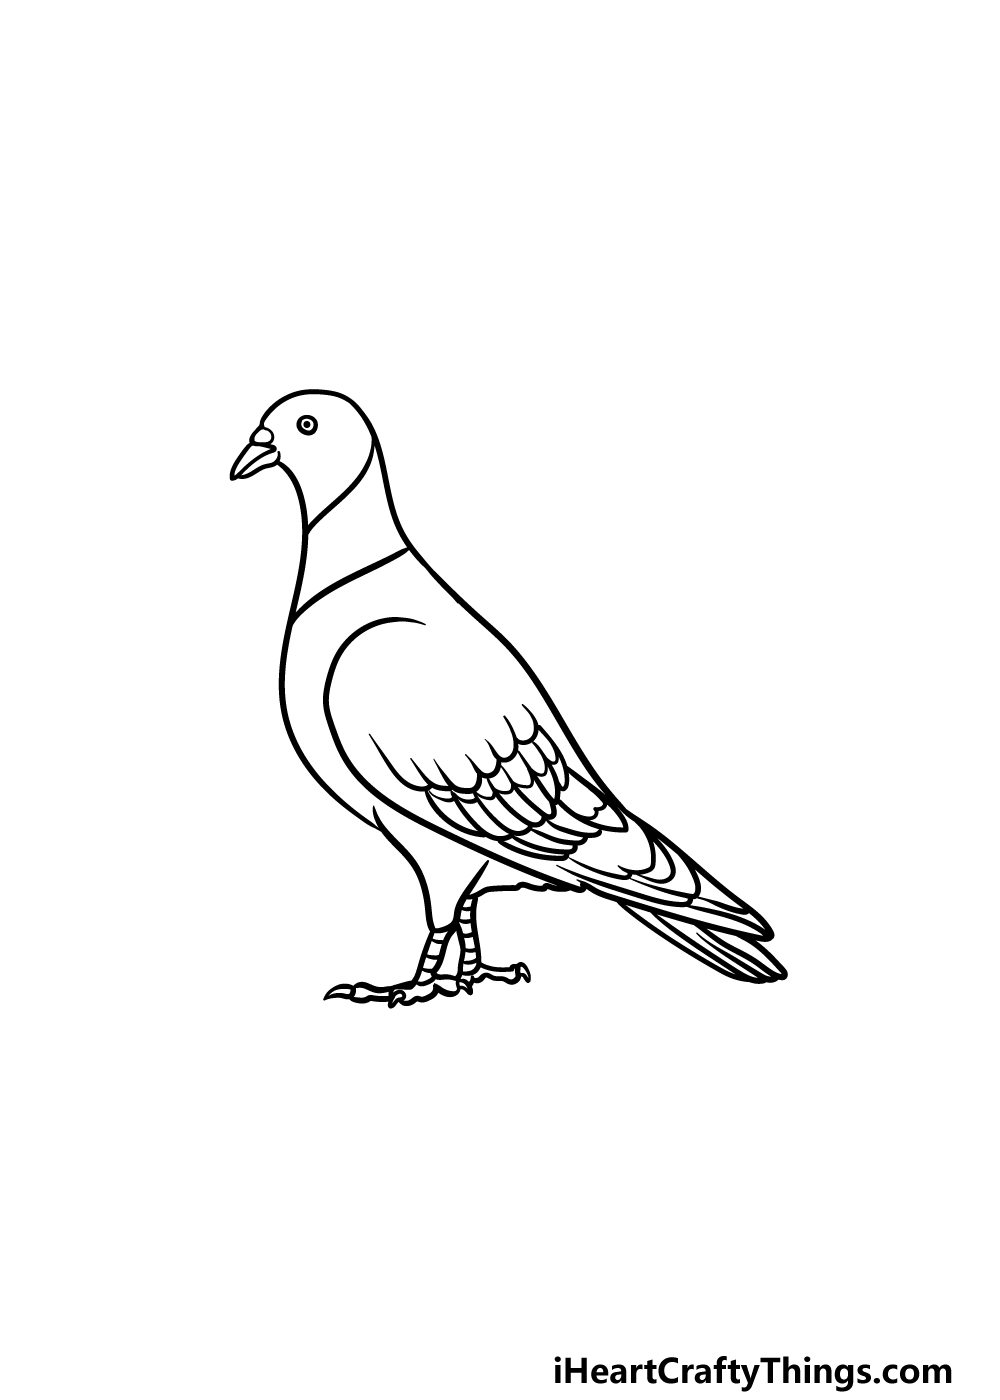 drawing a pigeon step 5